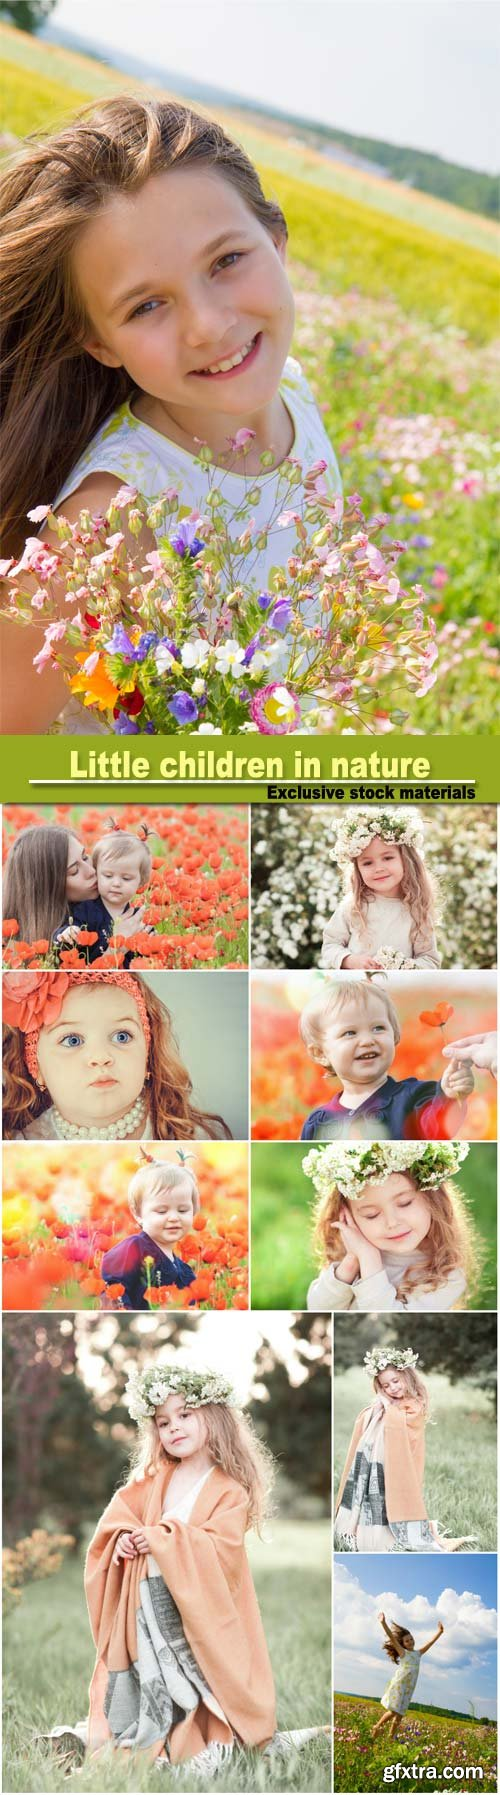 Little Children in Nature, Family 10xJPG